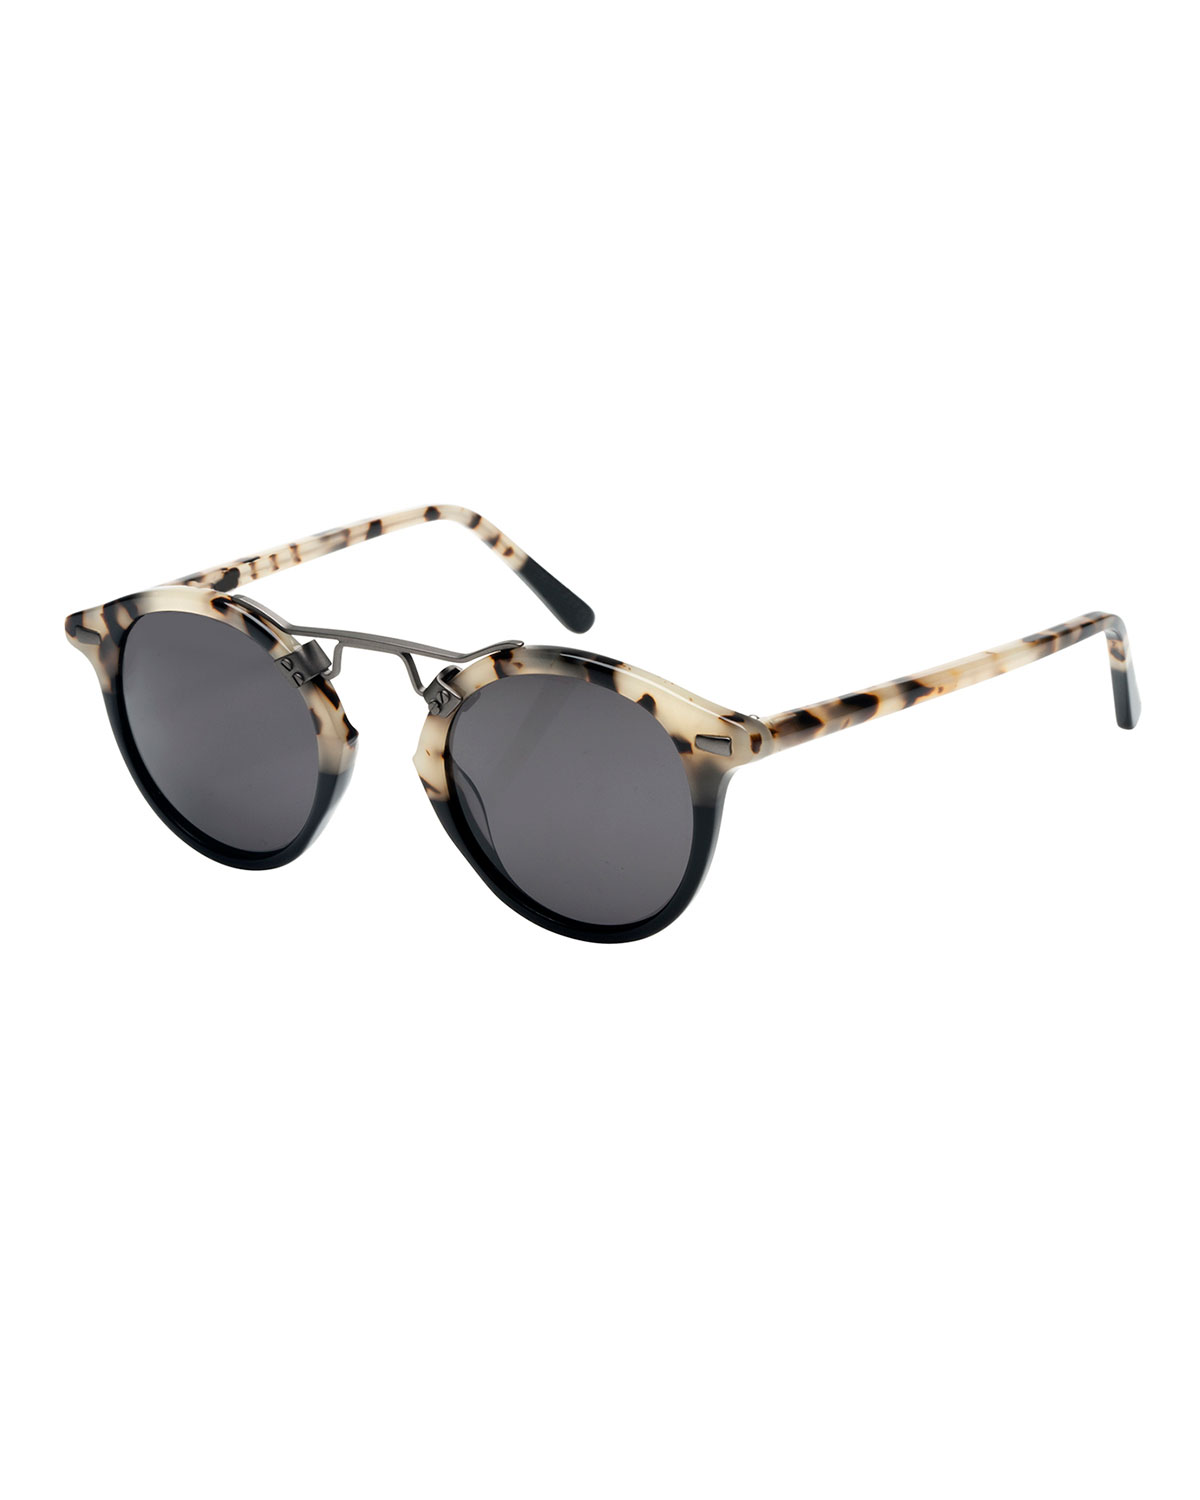 792772d43ad0 KREWE St. Louis Round Polarized Two-Tone Sunglasses